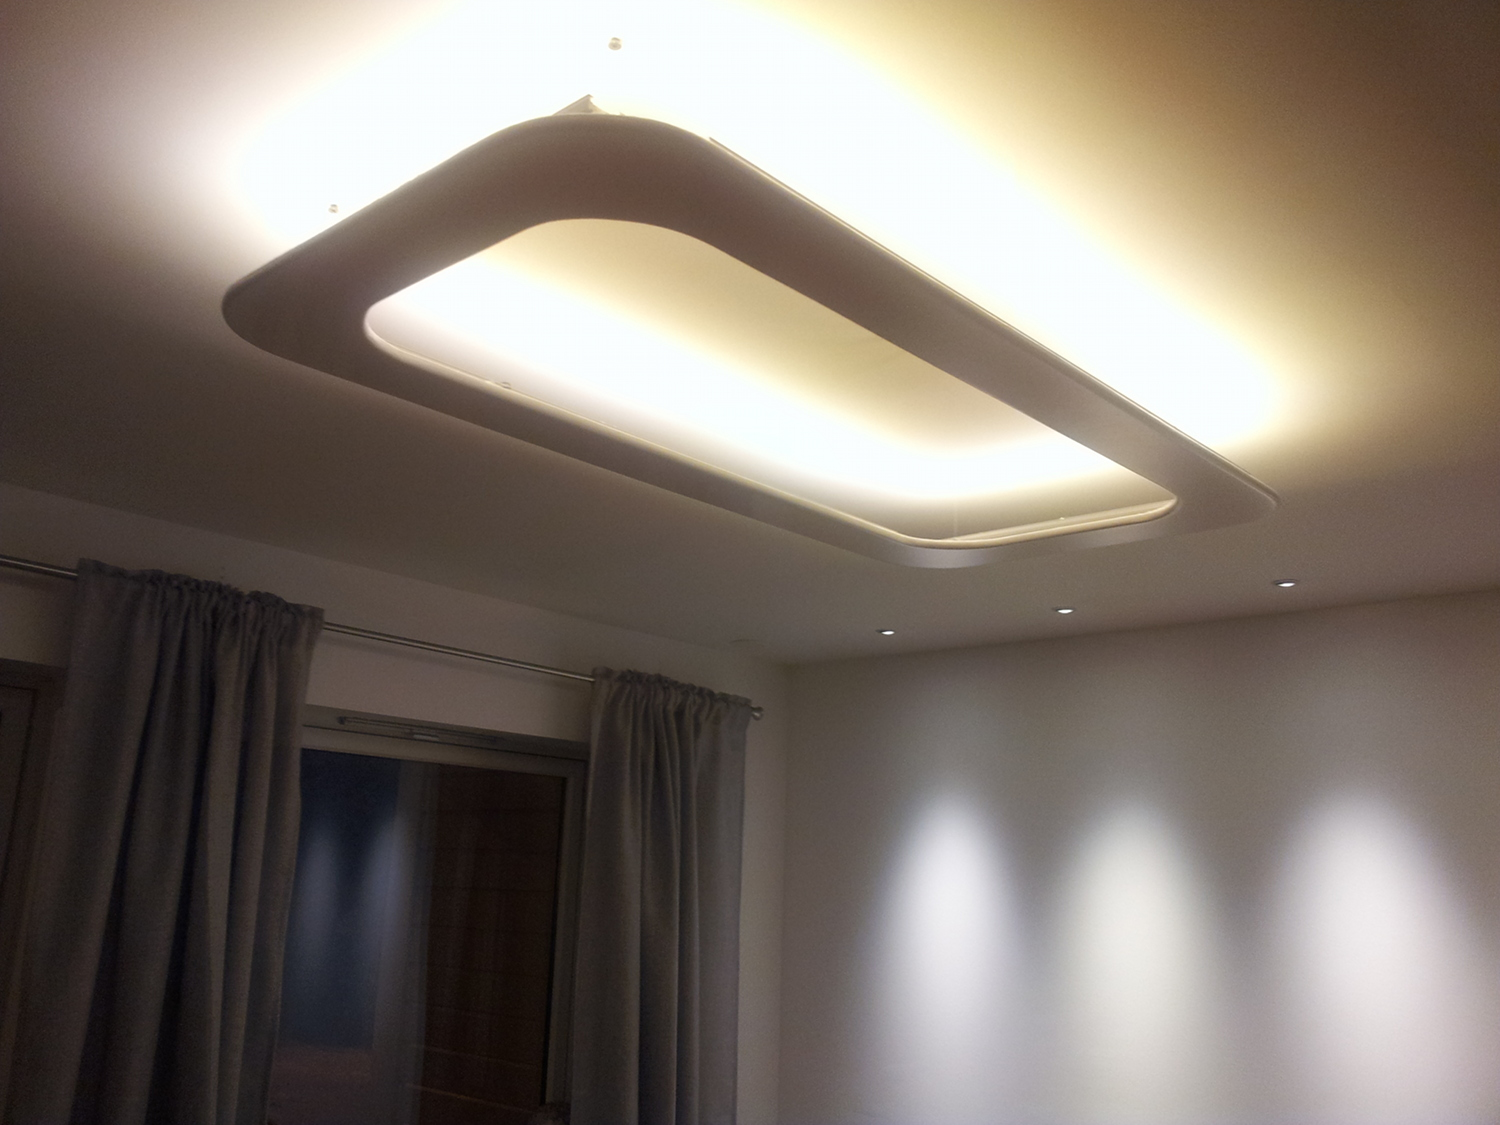 Ceiling Led Lights Flipkart : Large led ceiling lights consume less energy by given